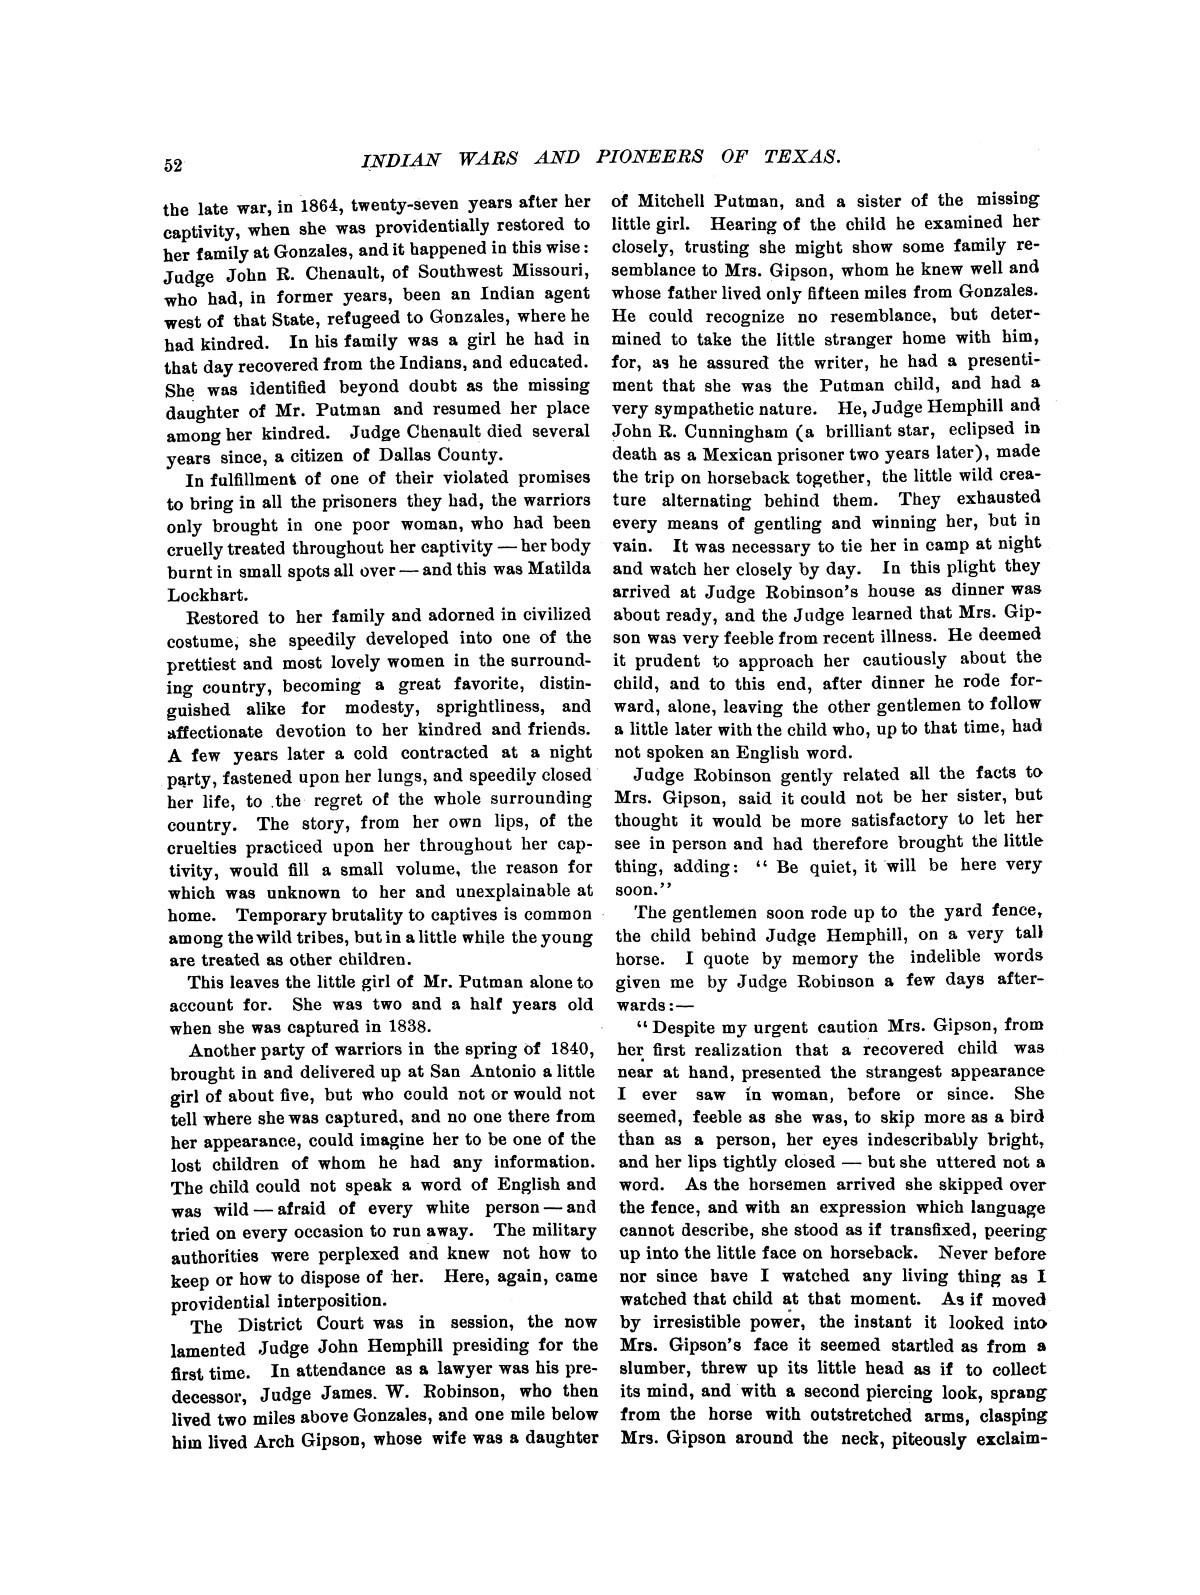 Indian wars and pioneers of Texas / by John Henry Brown.                                                                                                      [Sequence #]: 60 of 894